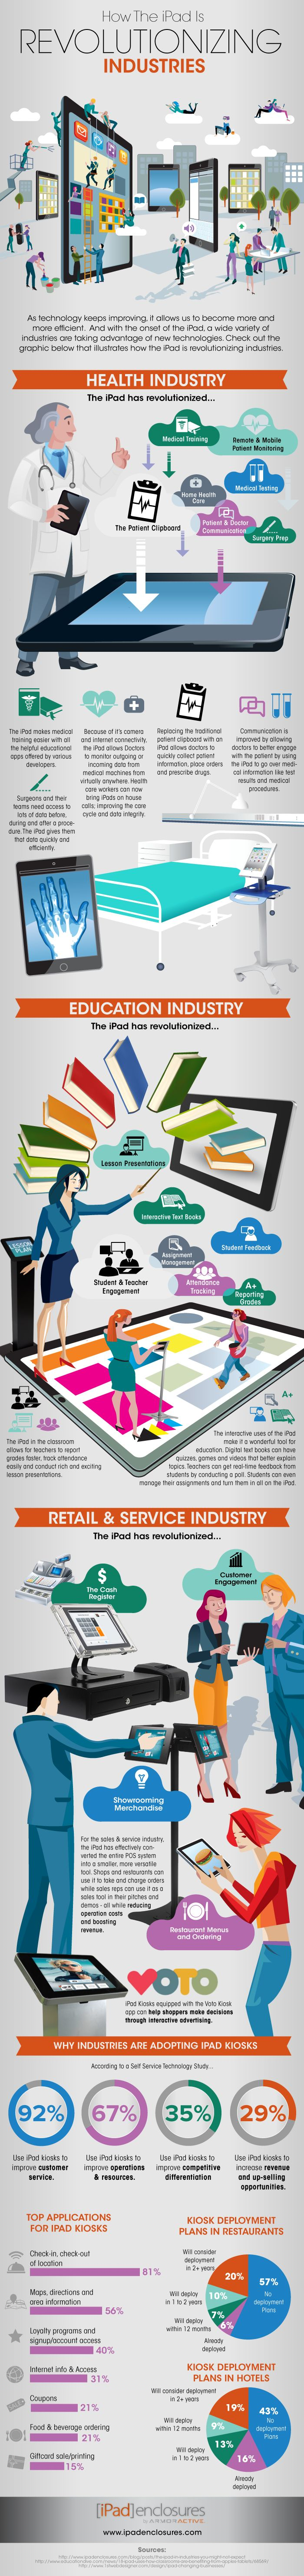 How the iPad Is Revolutionizing Industries     Visit our new infographic gallery at http://visualoop.com/